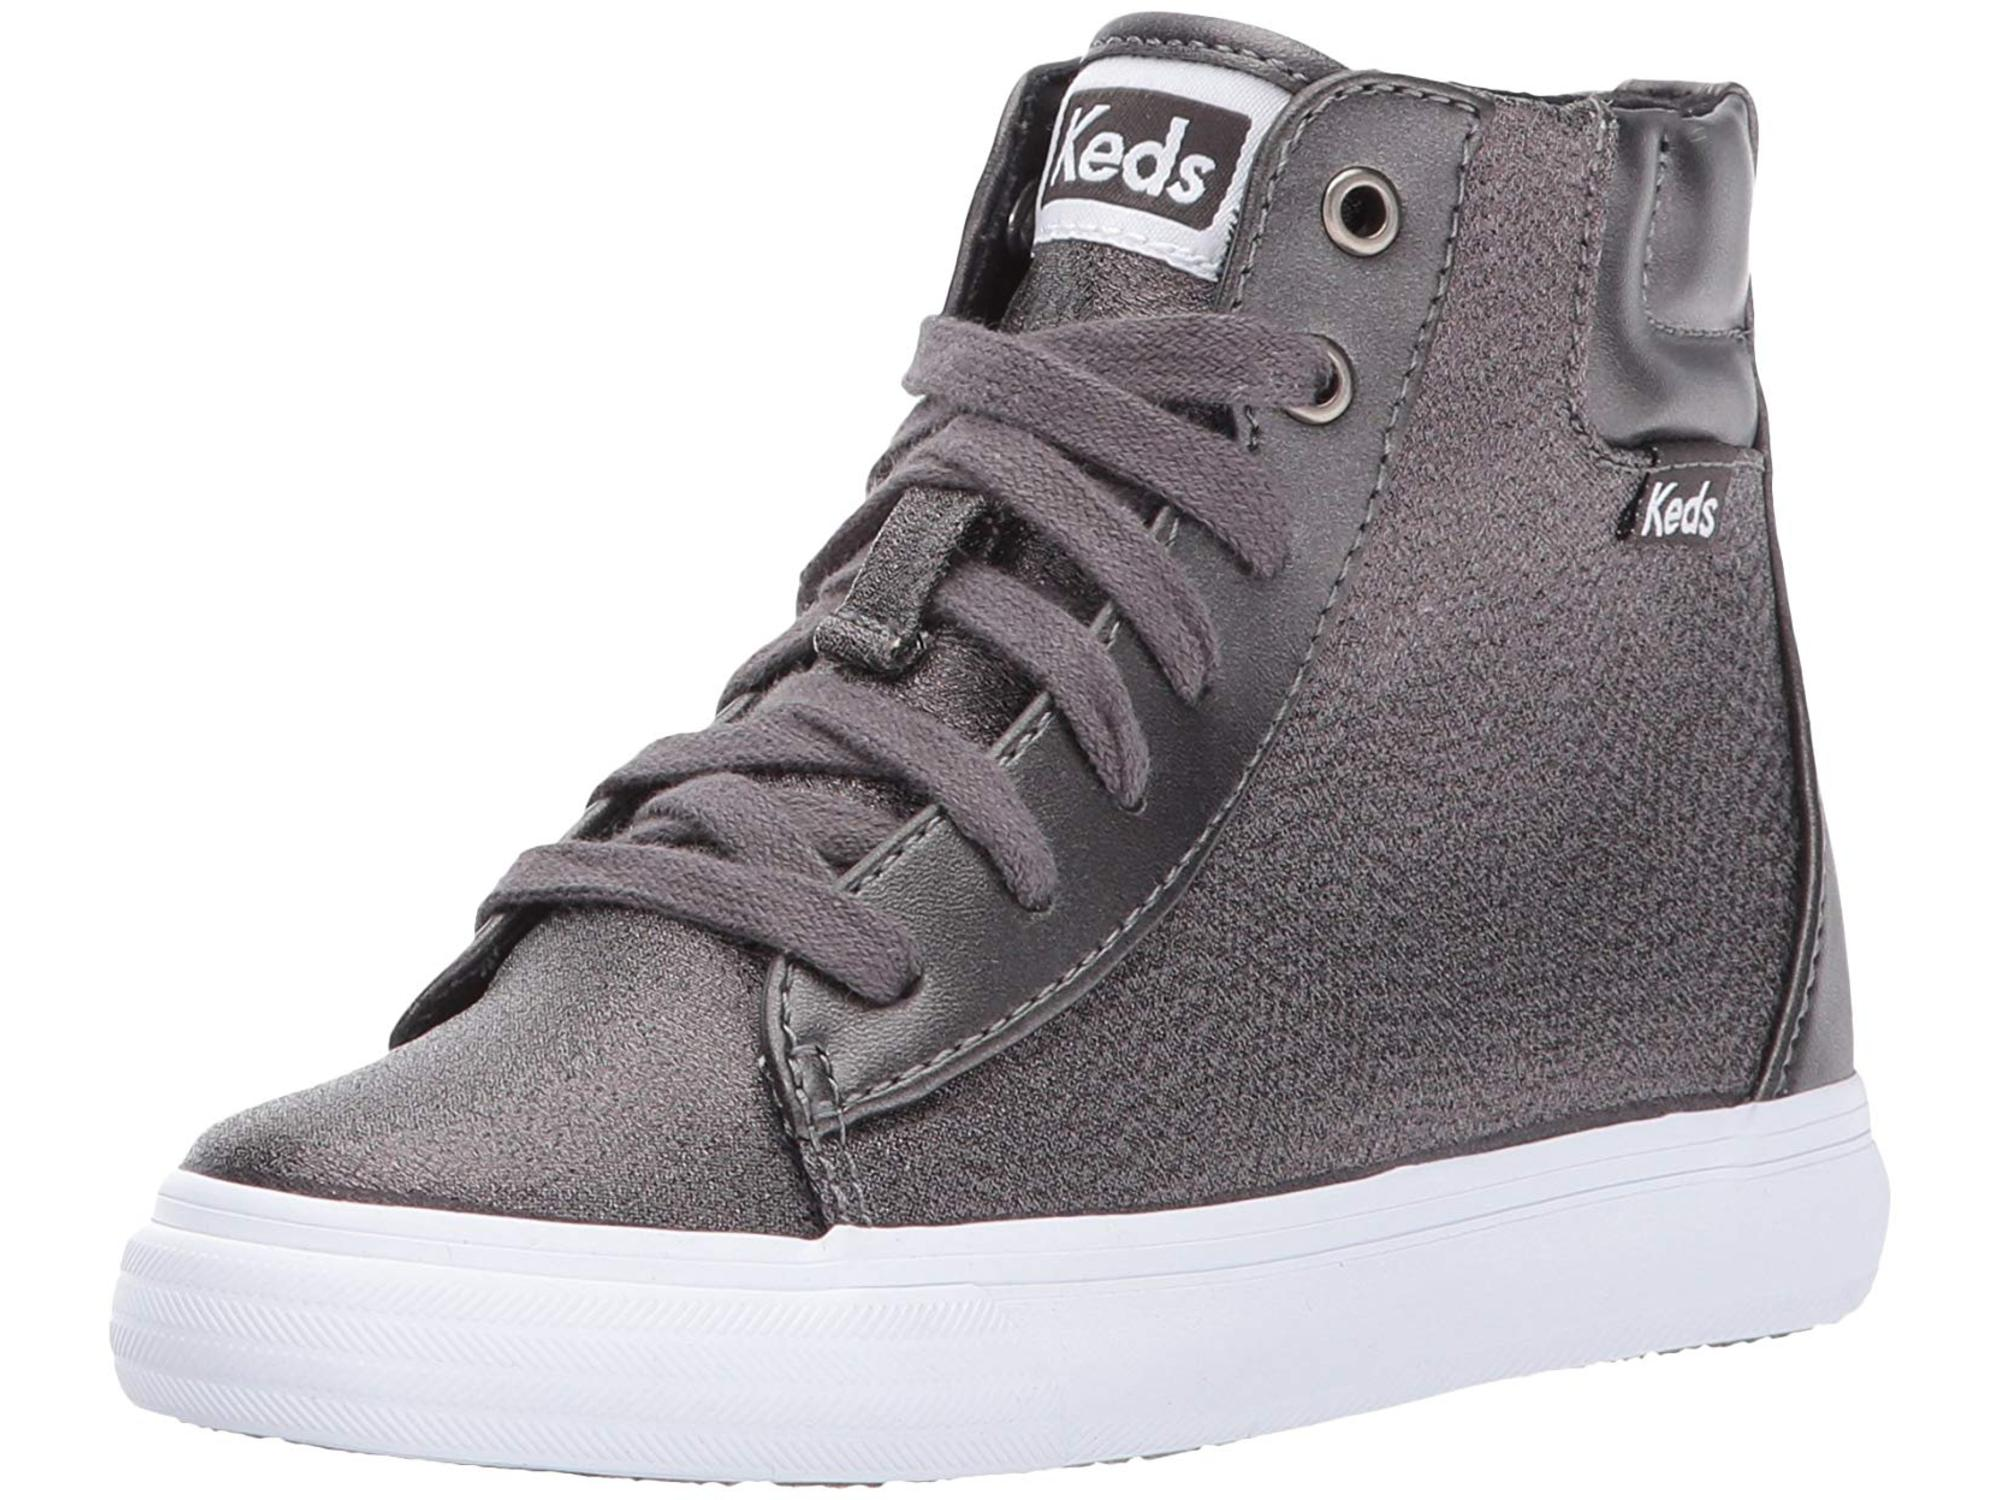 Keds Double Up High Top Sneaker by Keds